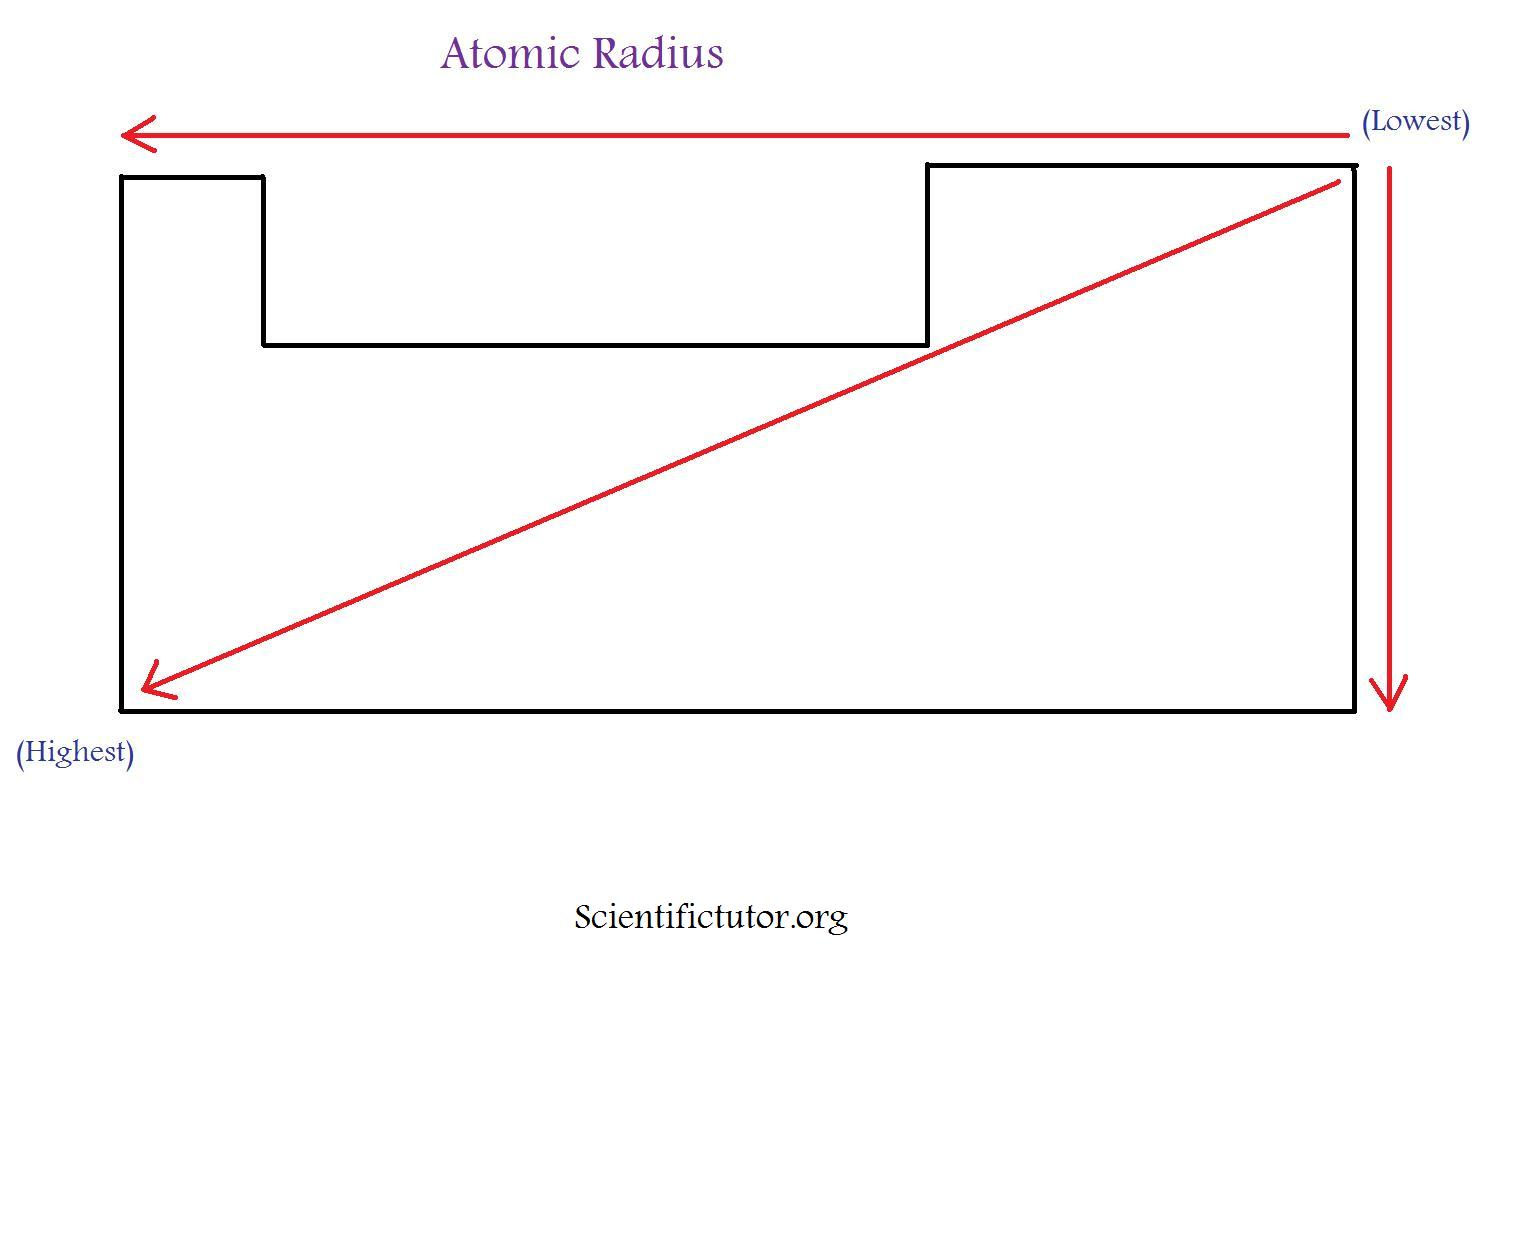 Chem atomic radius scientific tutor cartoon periodic table atomic radius gamestrikefo Choice Image